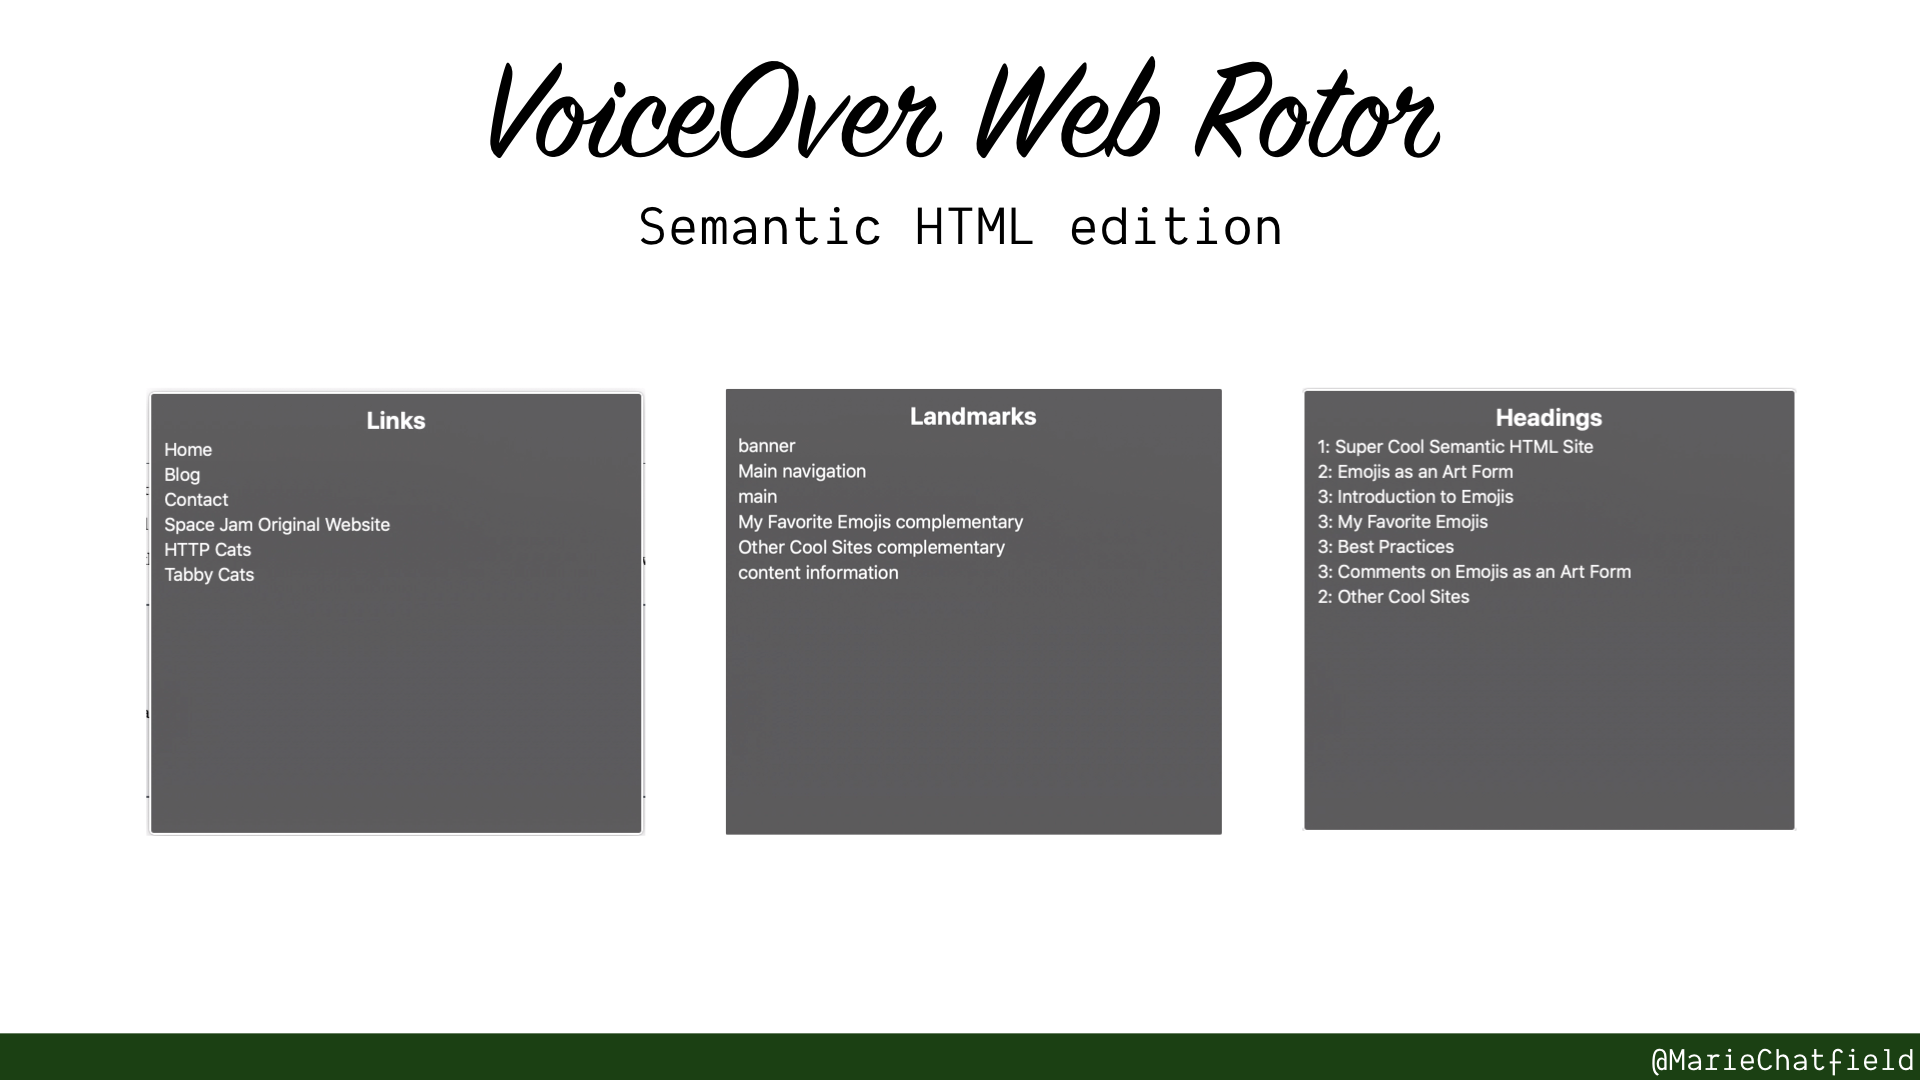 Slide showing VoiceOver Web Rotor for semantic HTML version